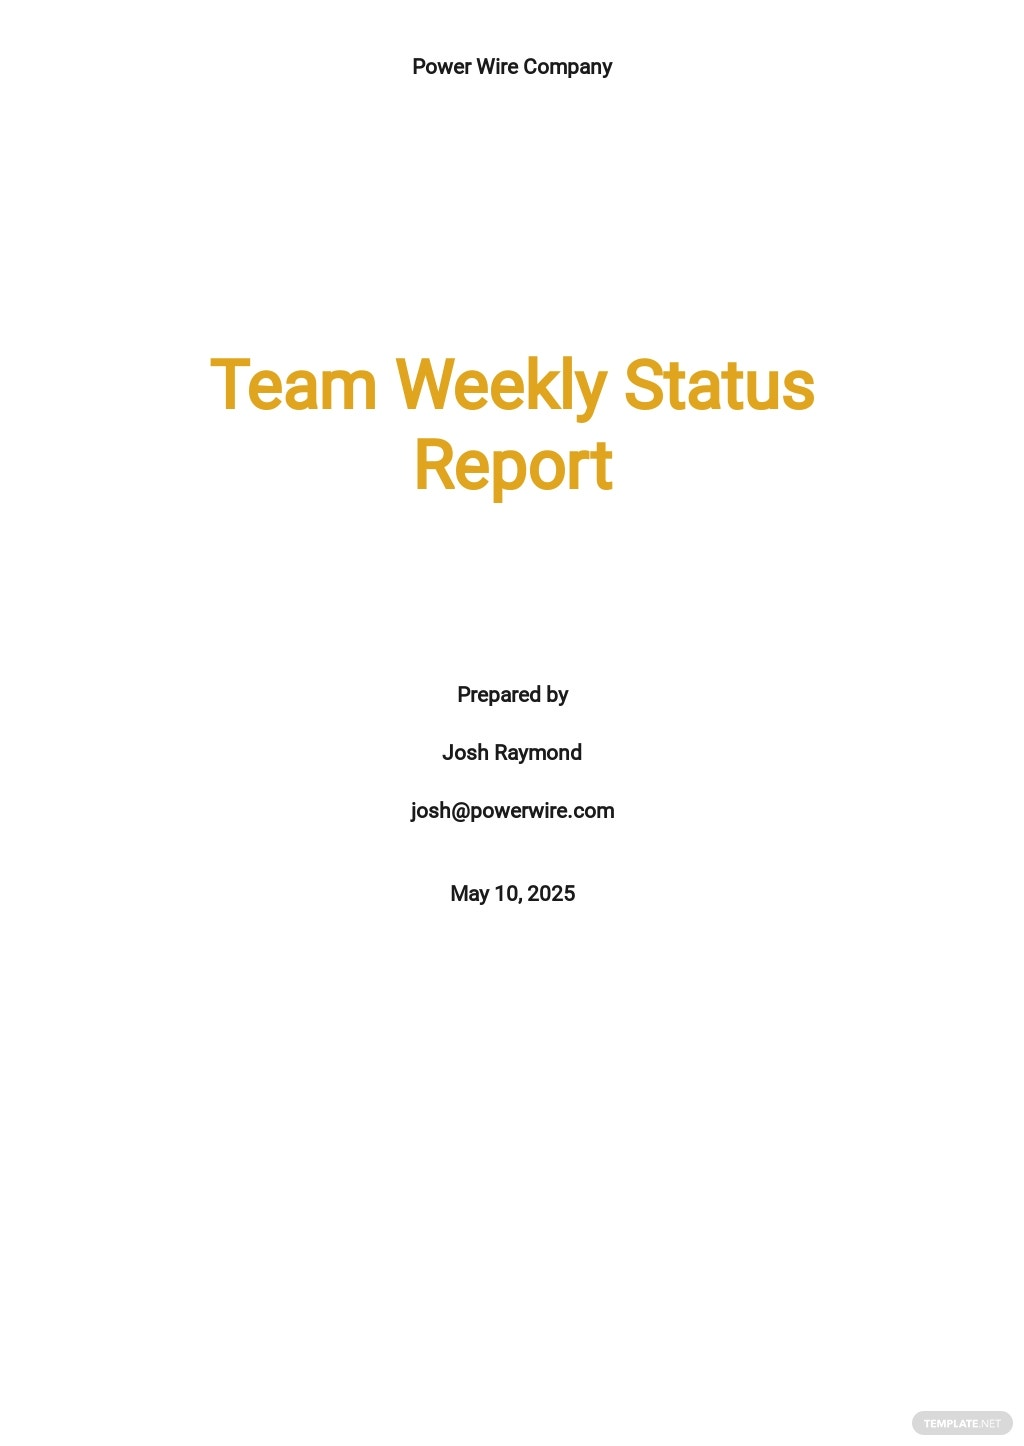 Team Weekly Status Report Template